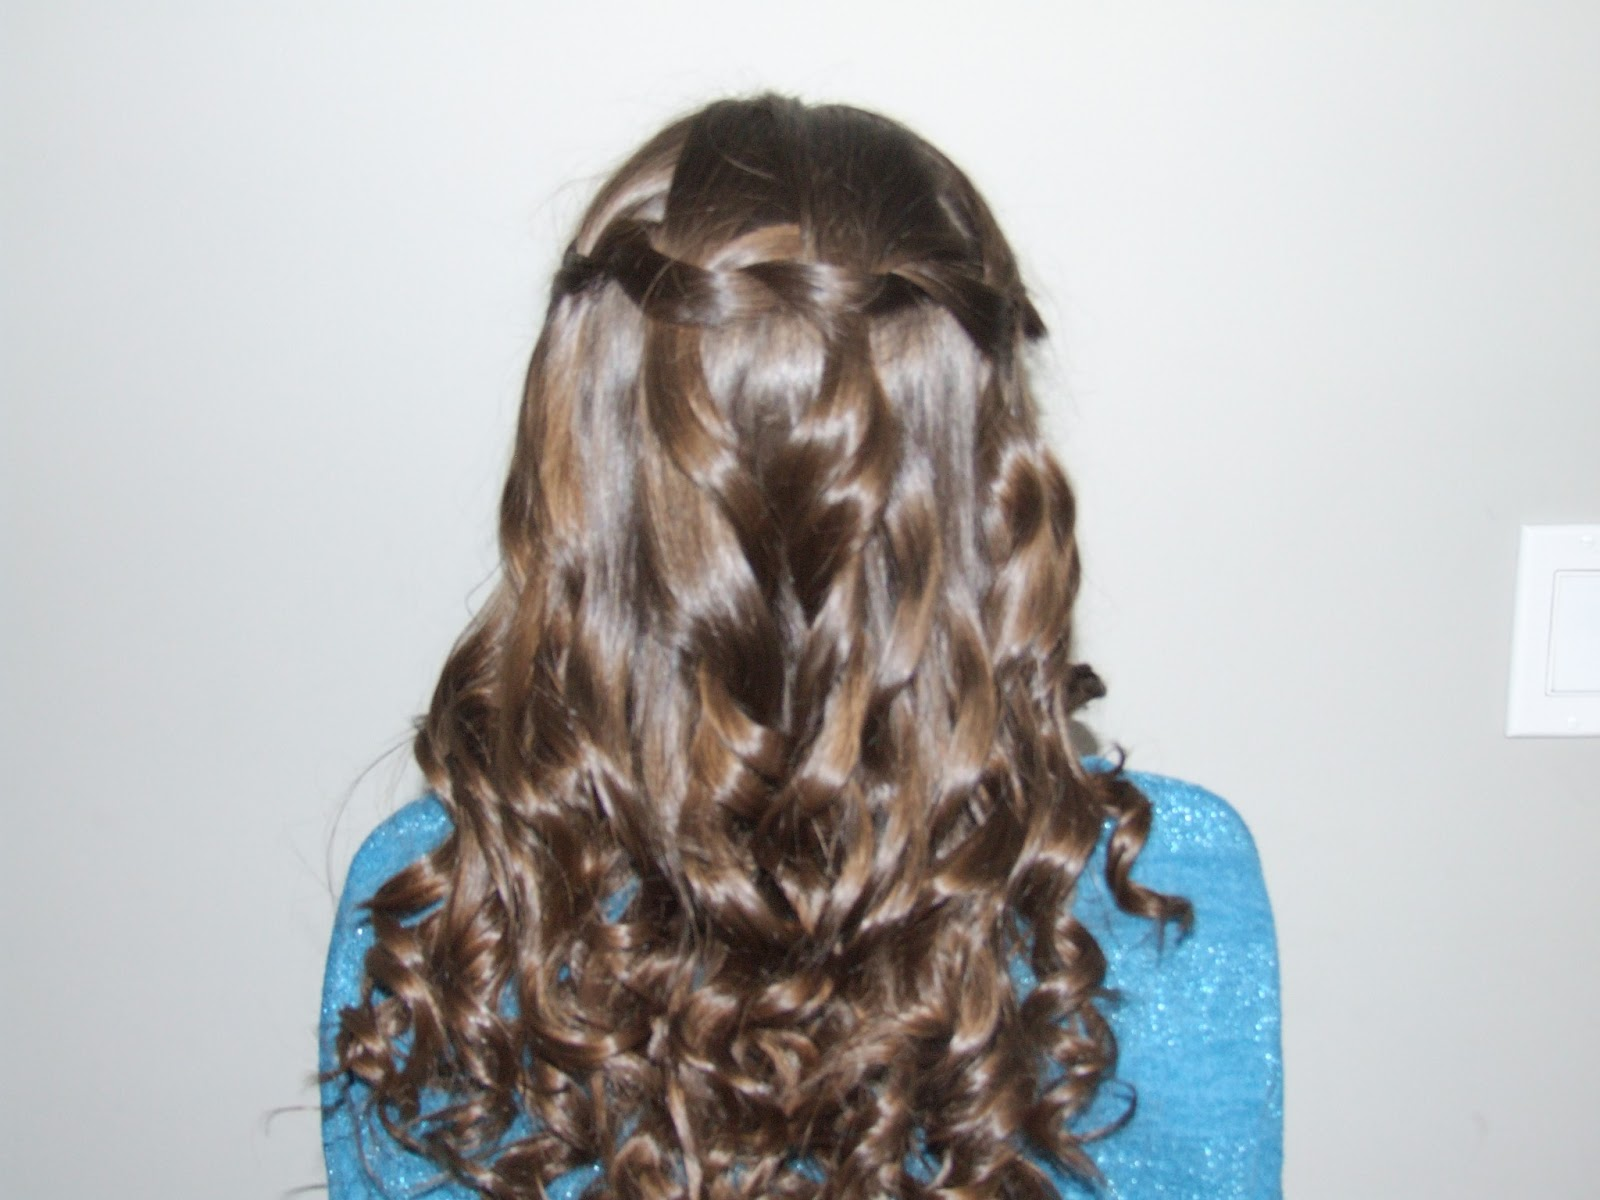 Different Types Of Braids Hairstyles Braided Hair Styles 1080p Hd